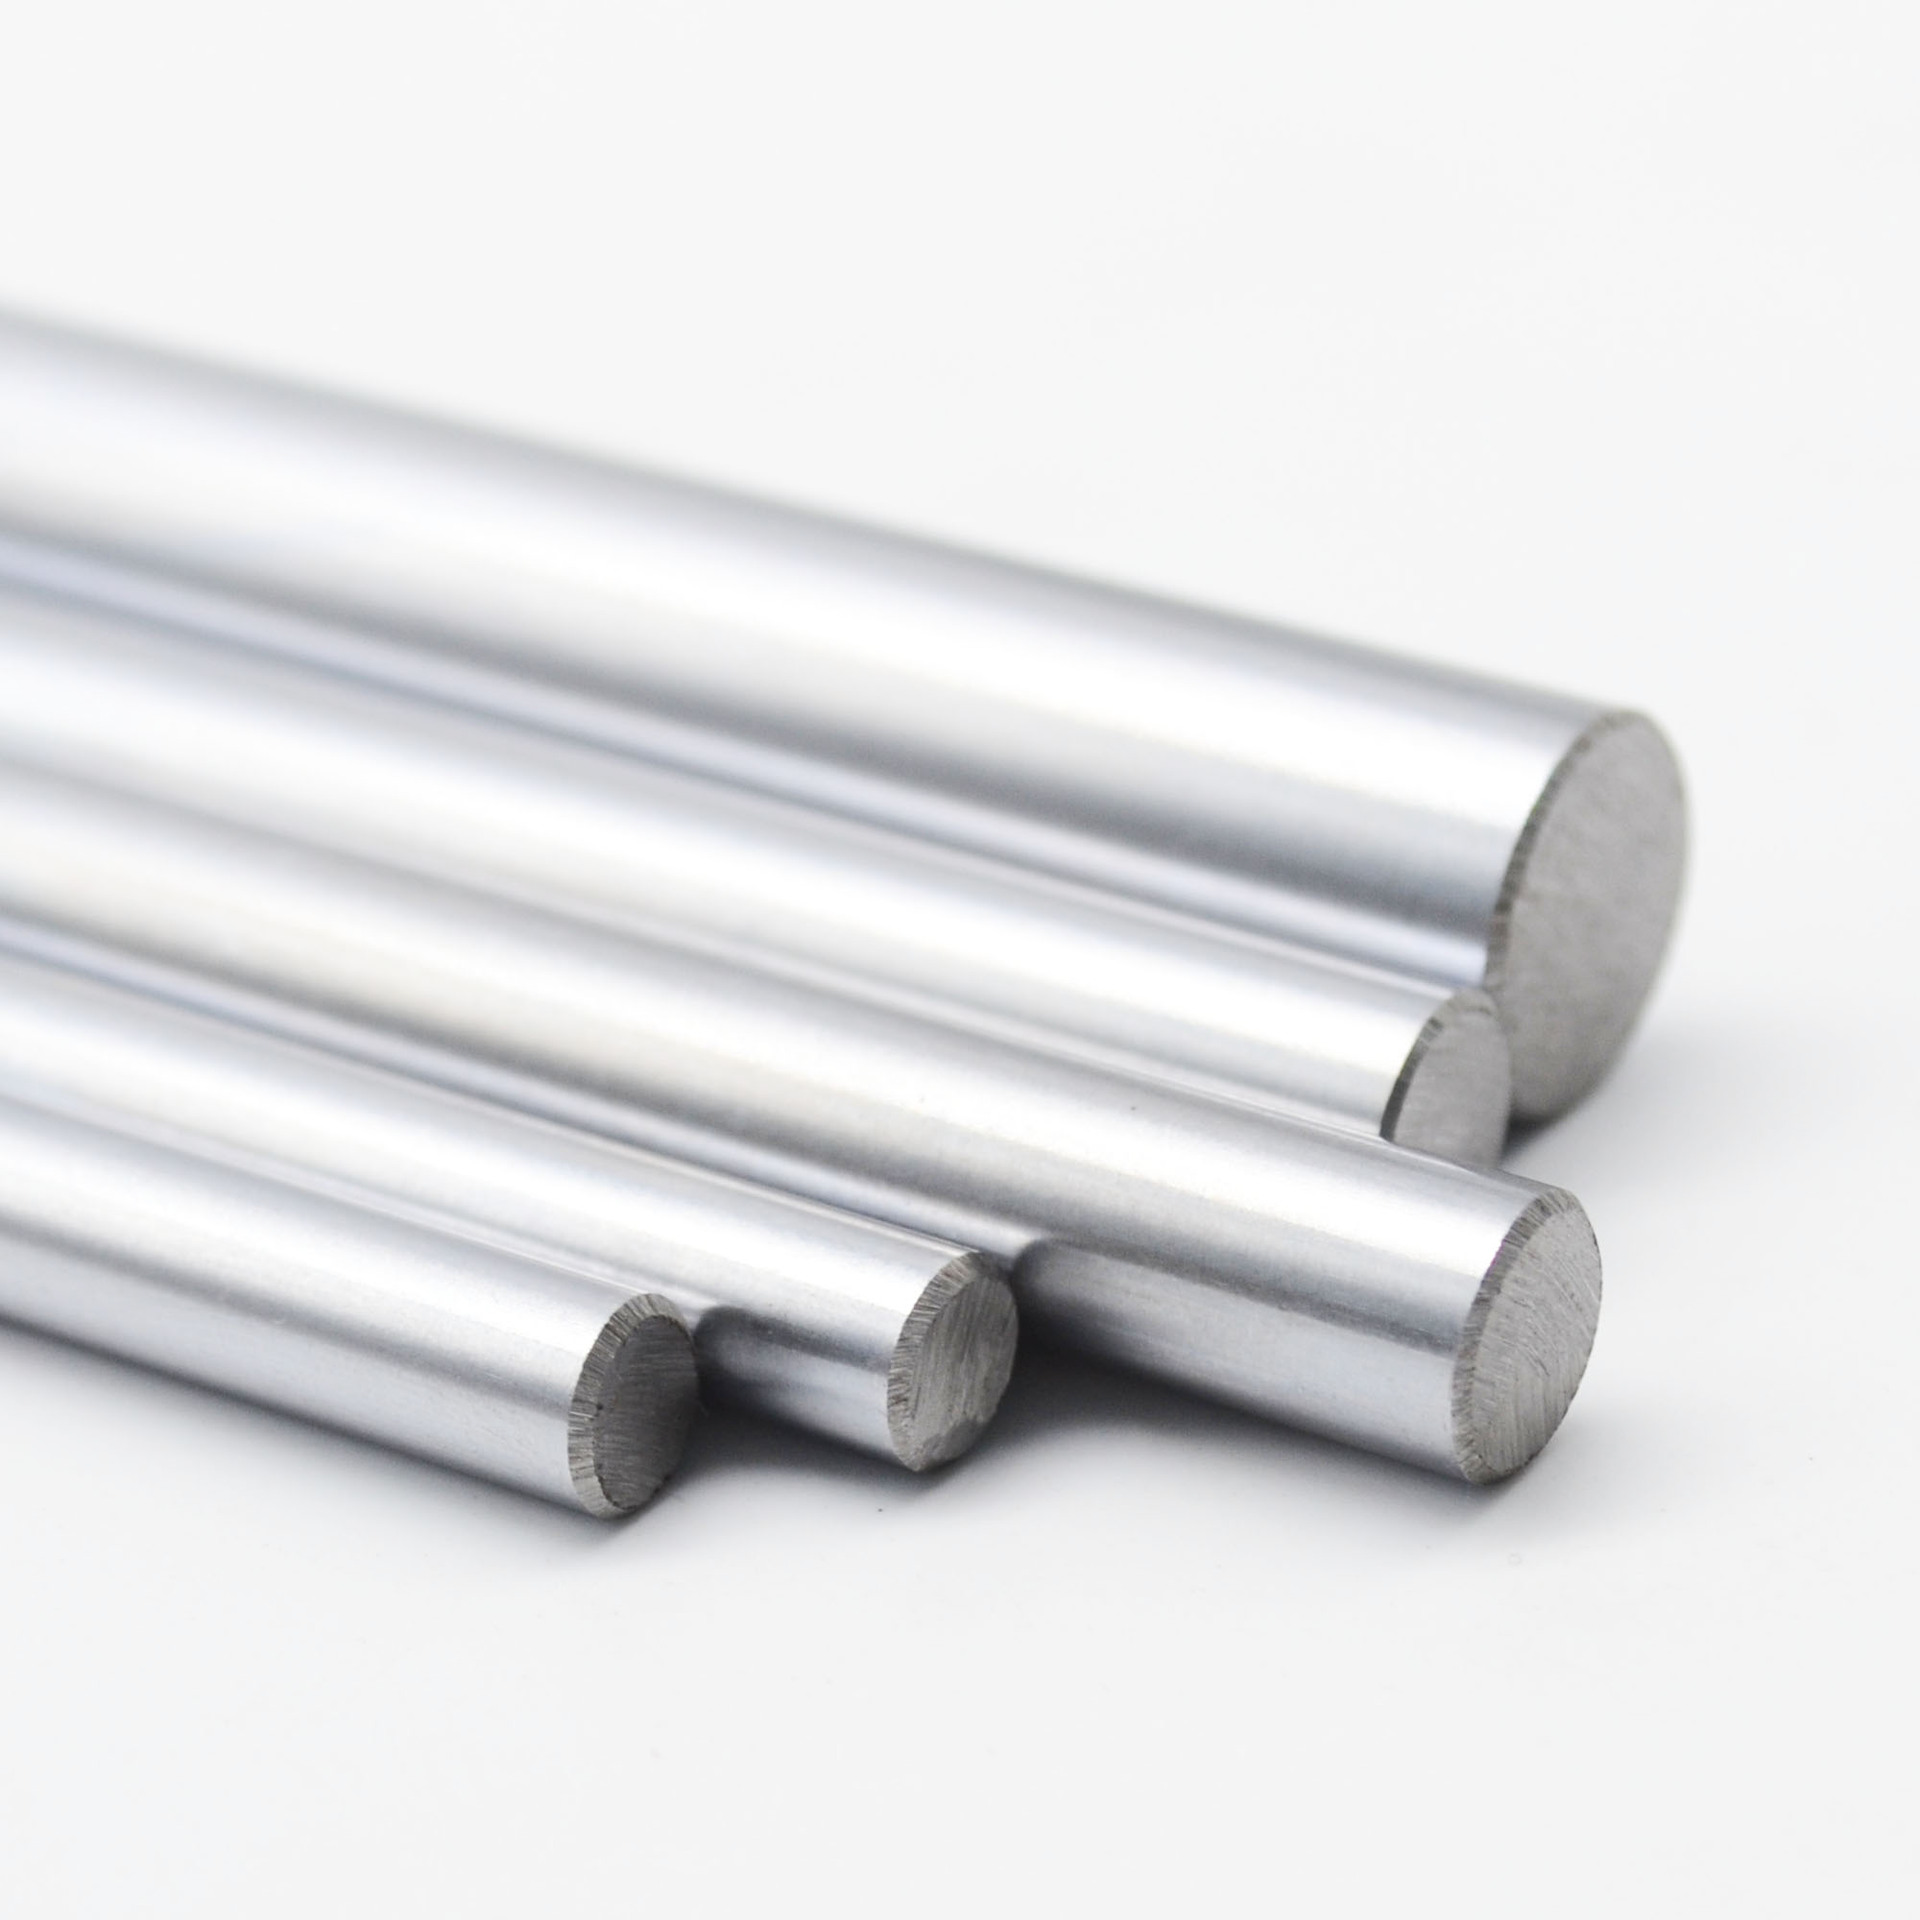 2pcs High Accuracy 8mm Linear Rail Cylinder Shaft Optical Axis Smooth Rod 300320330350390400500mm For 3d printer CNC Parts